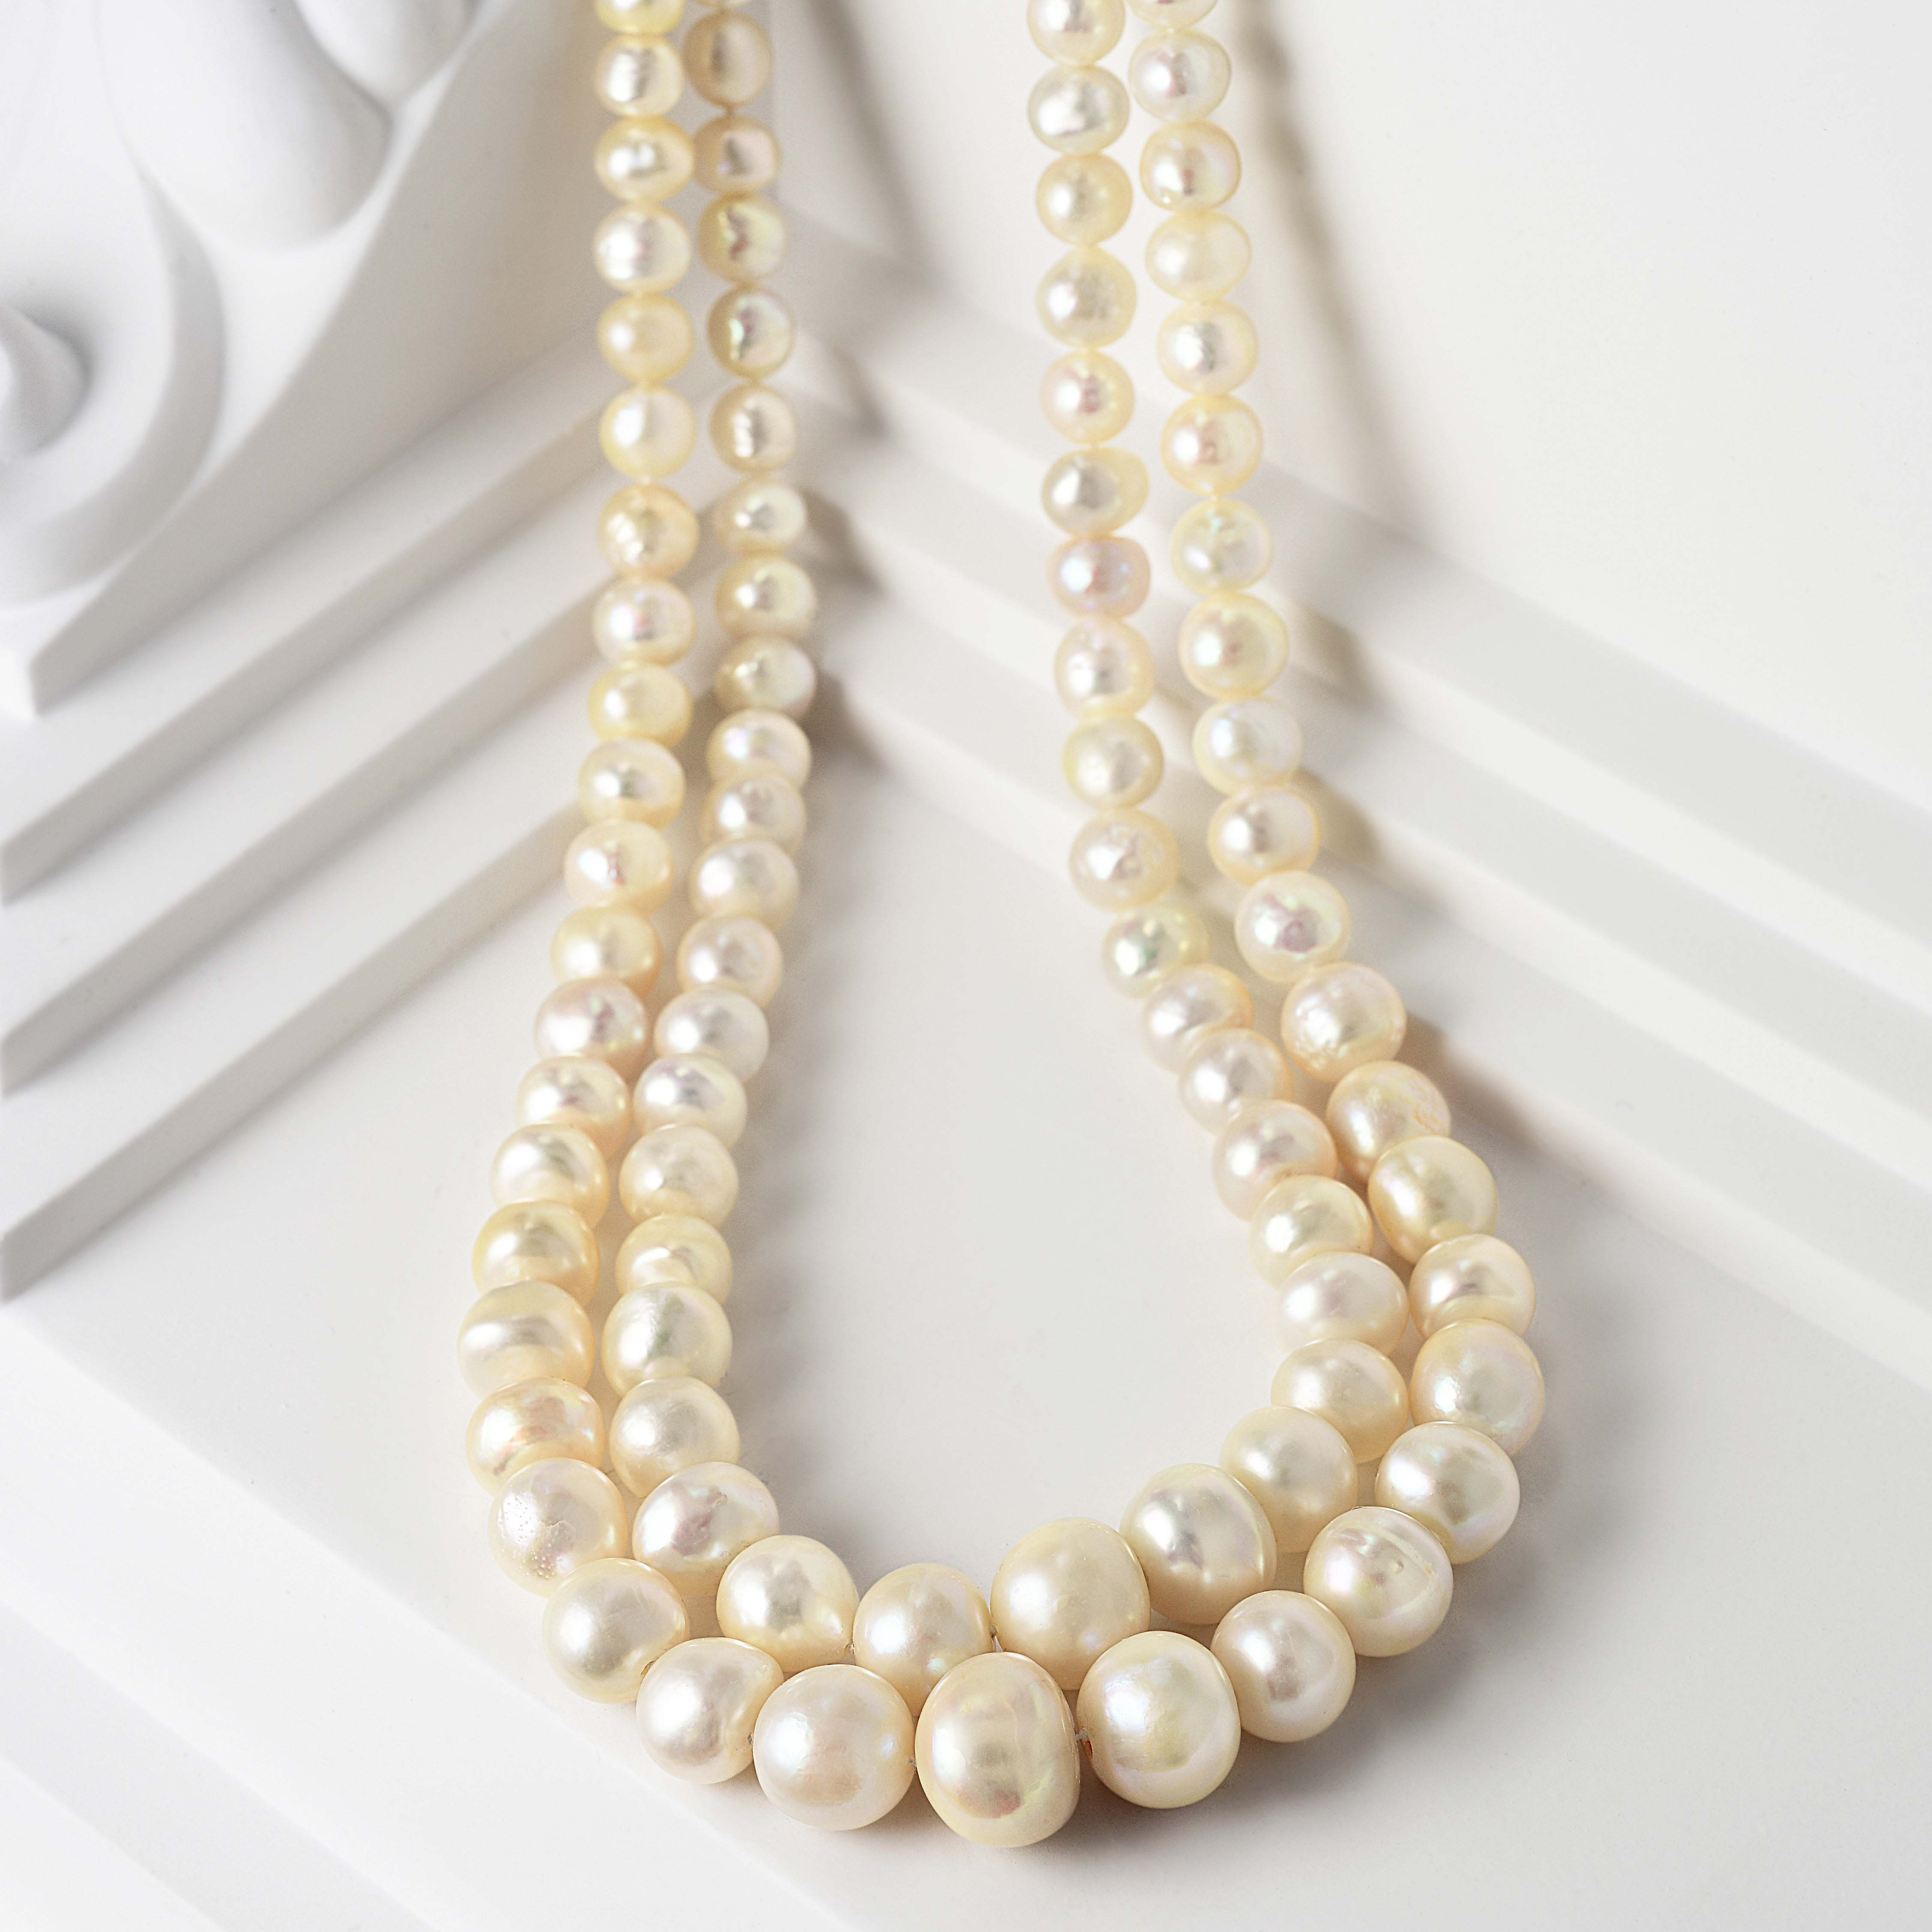 A Double Strand Natural Saltwater Pearl Necklace